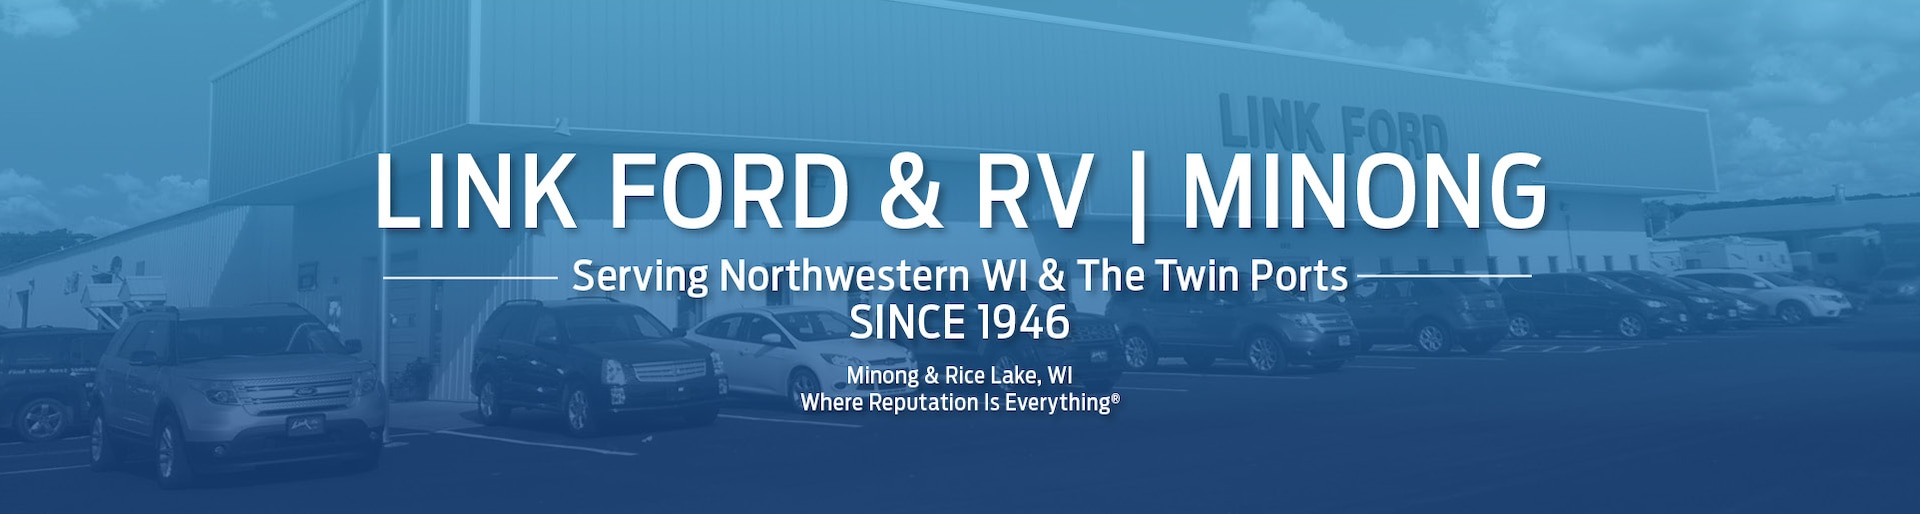 Link Ford Minong >> Link Ford Minong Ford Dealership In Minong Wi